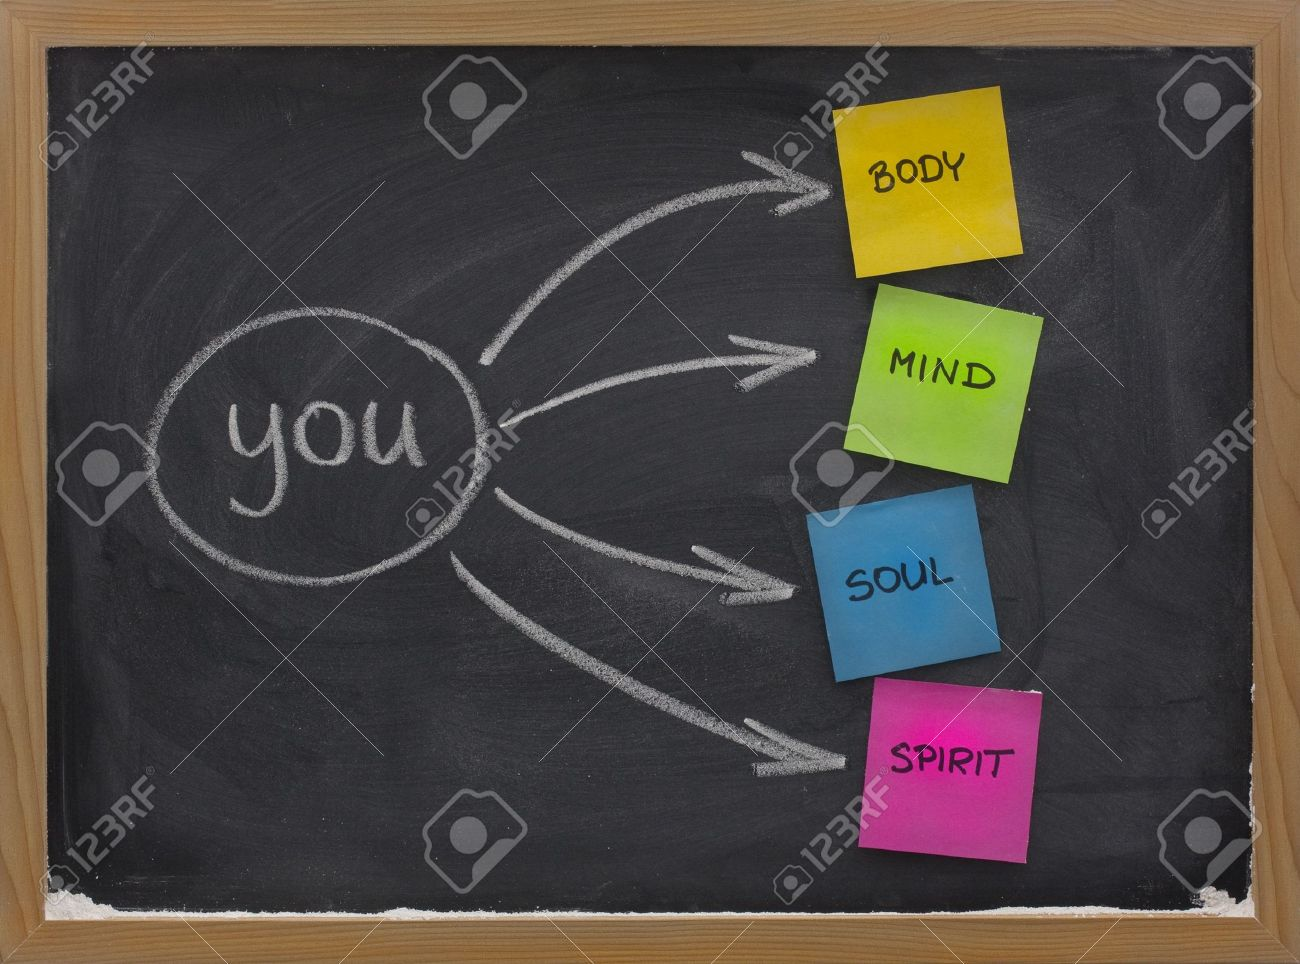 you, body, mind, soul, spirit - a simple mind map for personal growth or development sketched with white chalk and sticky notes on blackboard with eraser smudges Stock Photo - 4491467